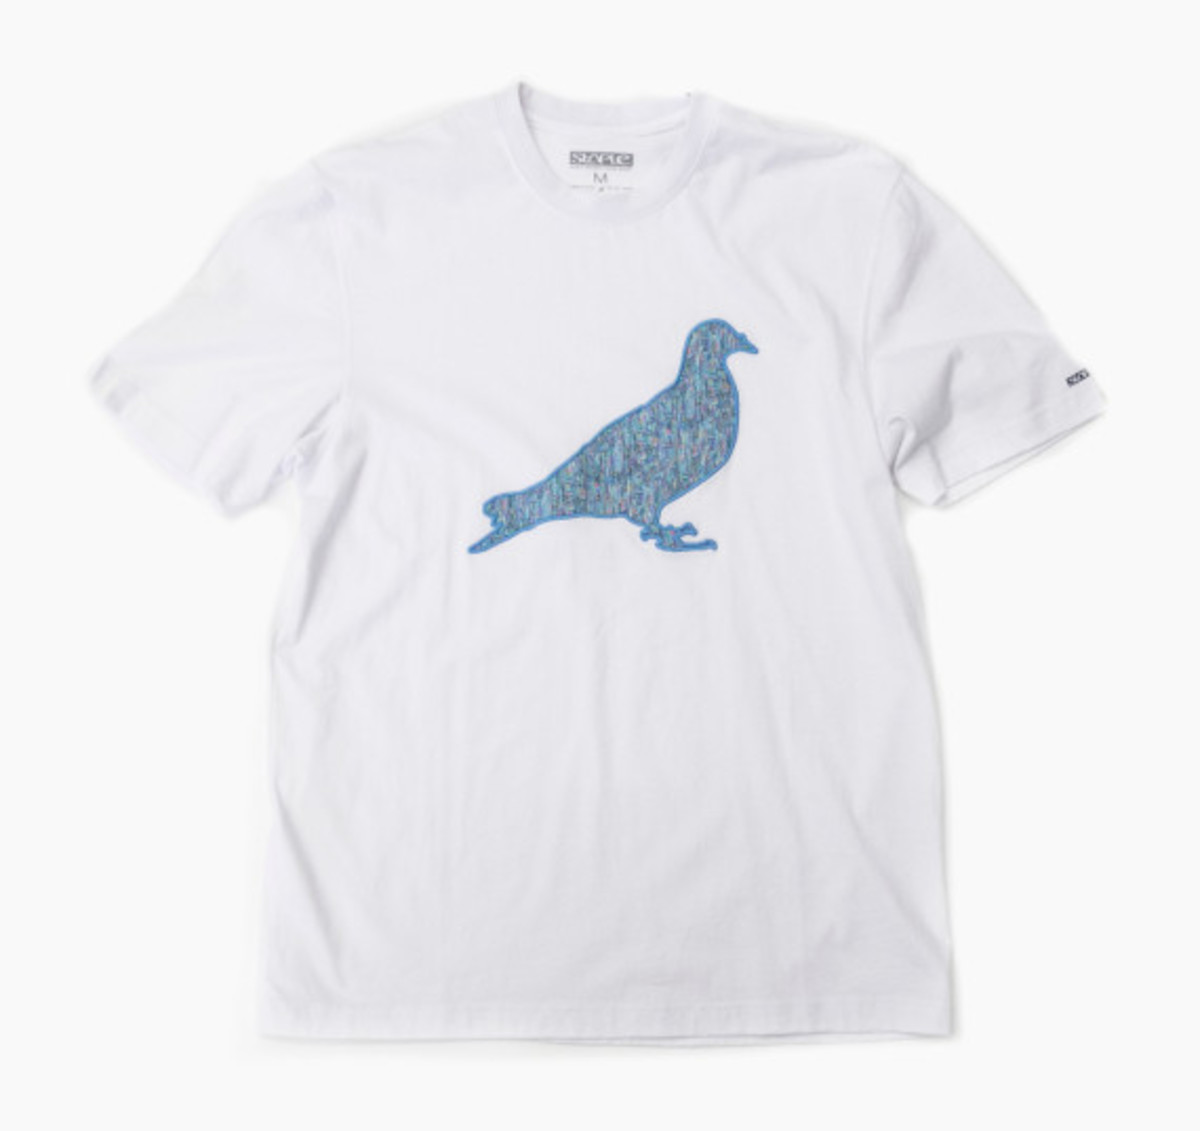 staple-liberty-capsule-collection-13